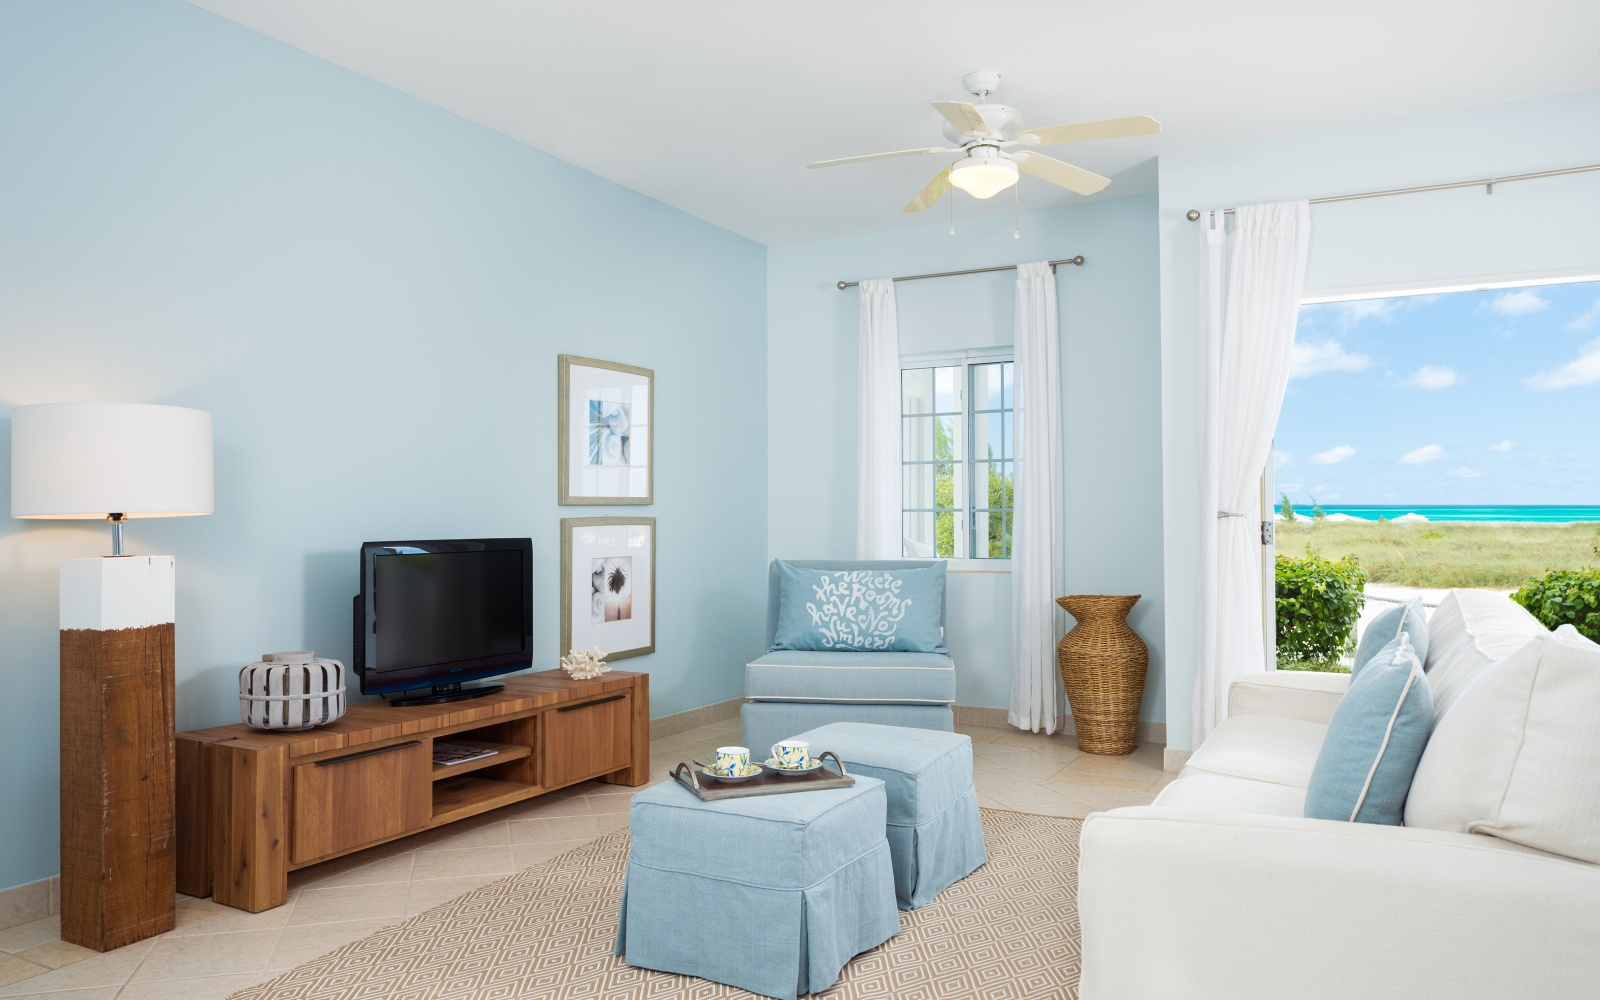 Interior of Beach House, Turks and Caicos